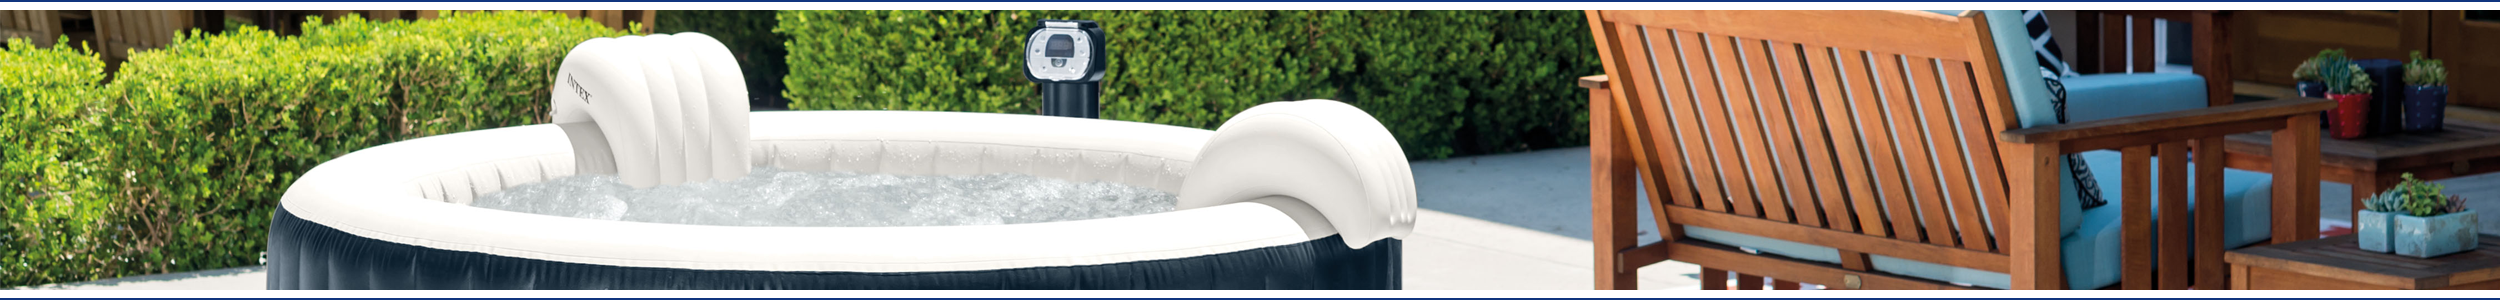 INTEX PureSpa hot tubs from Wensum Pools Ltd